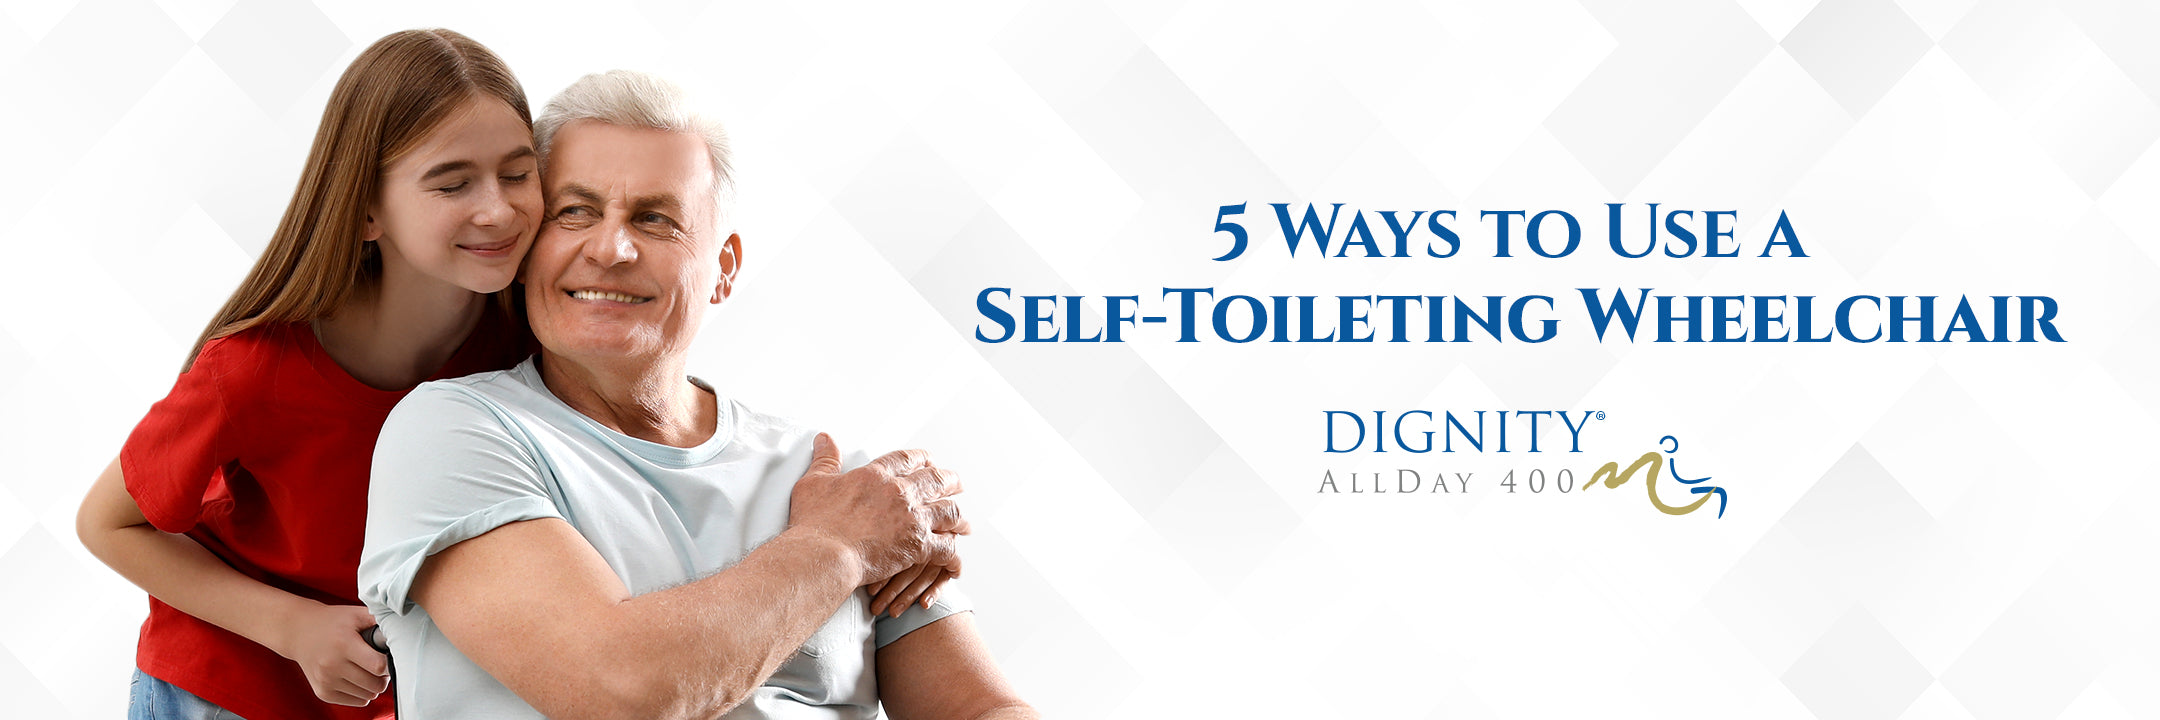 how to use a self-toileting wheelchair